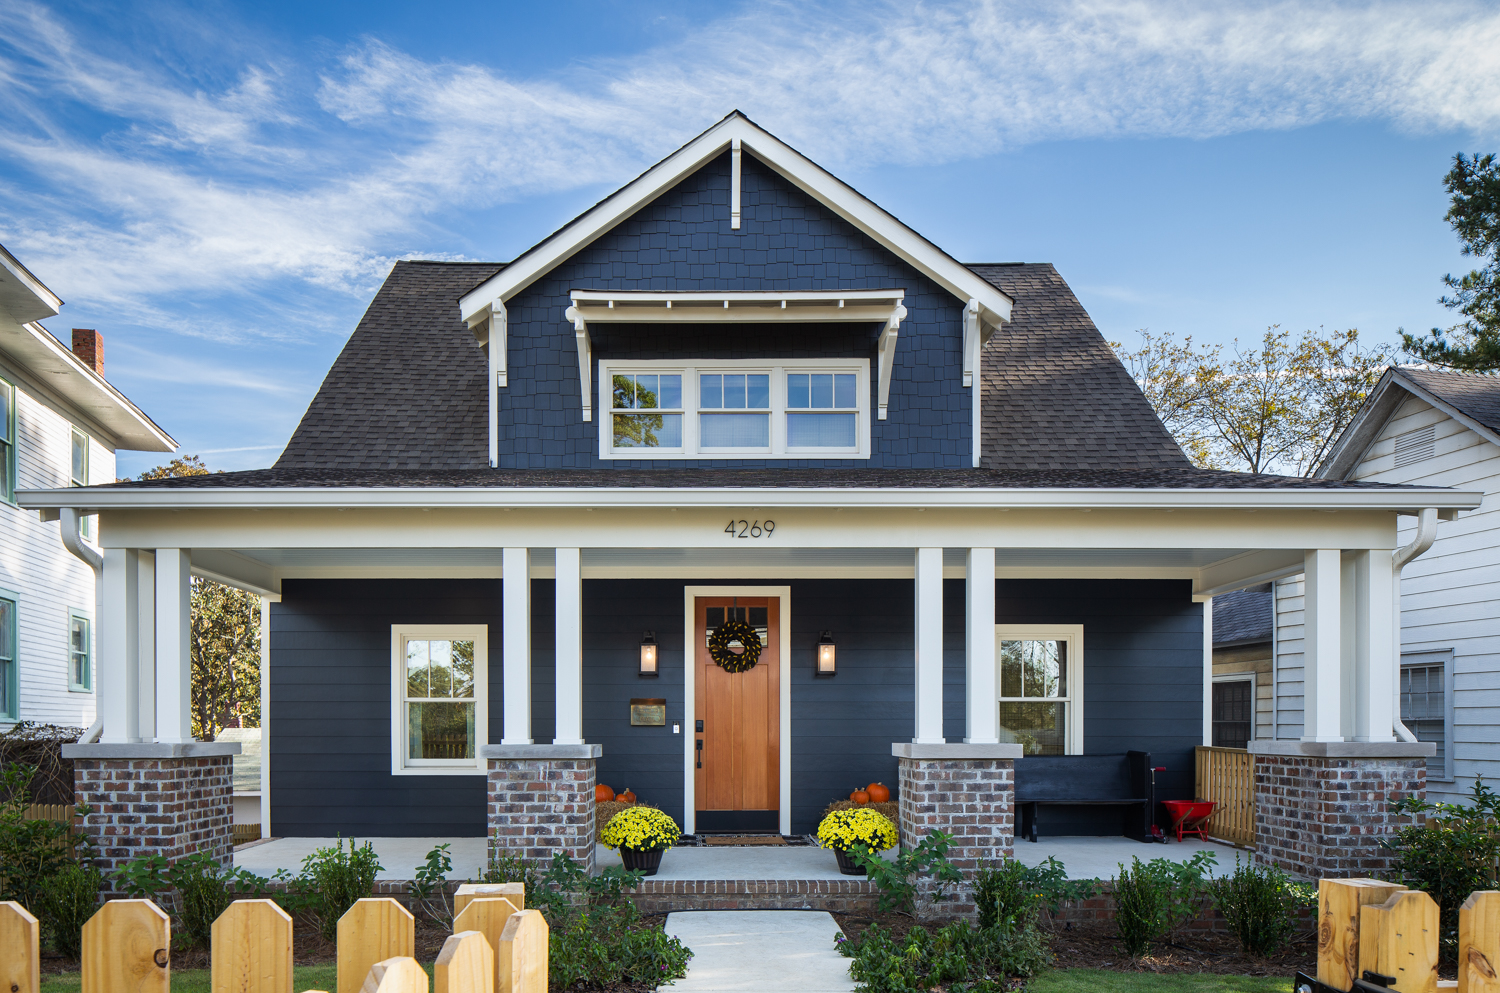 4269 5th Ave-Willow Homes -2.jpg